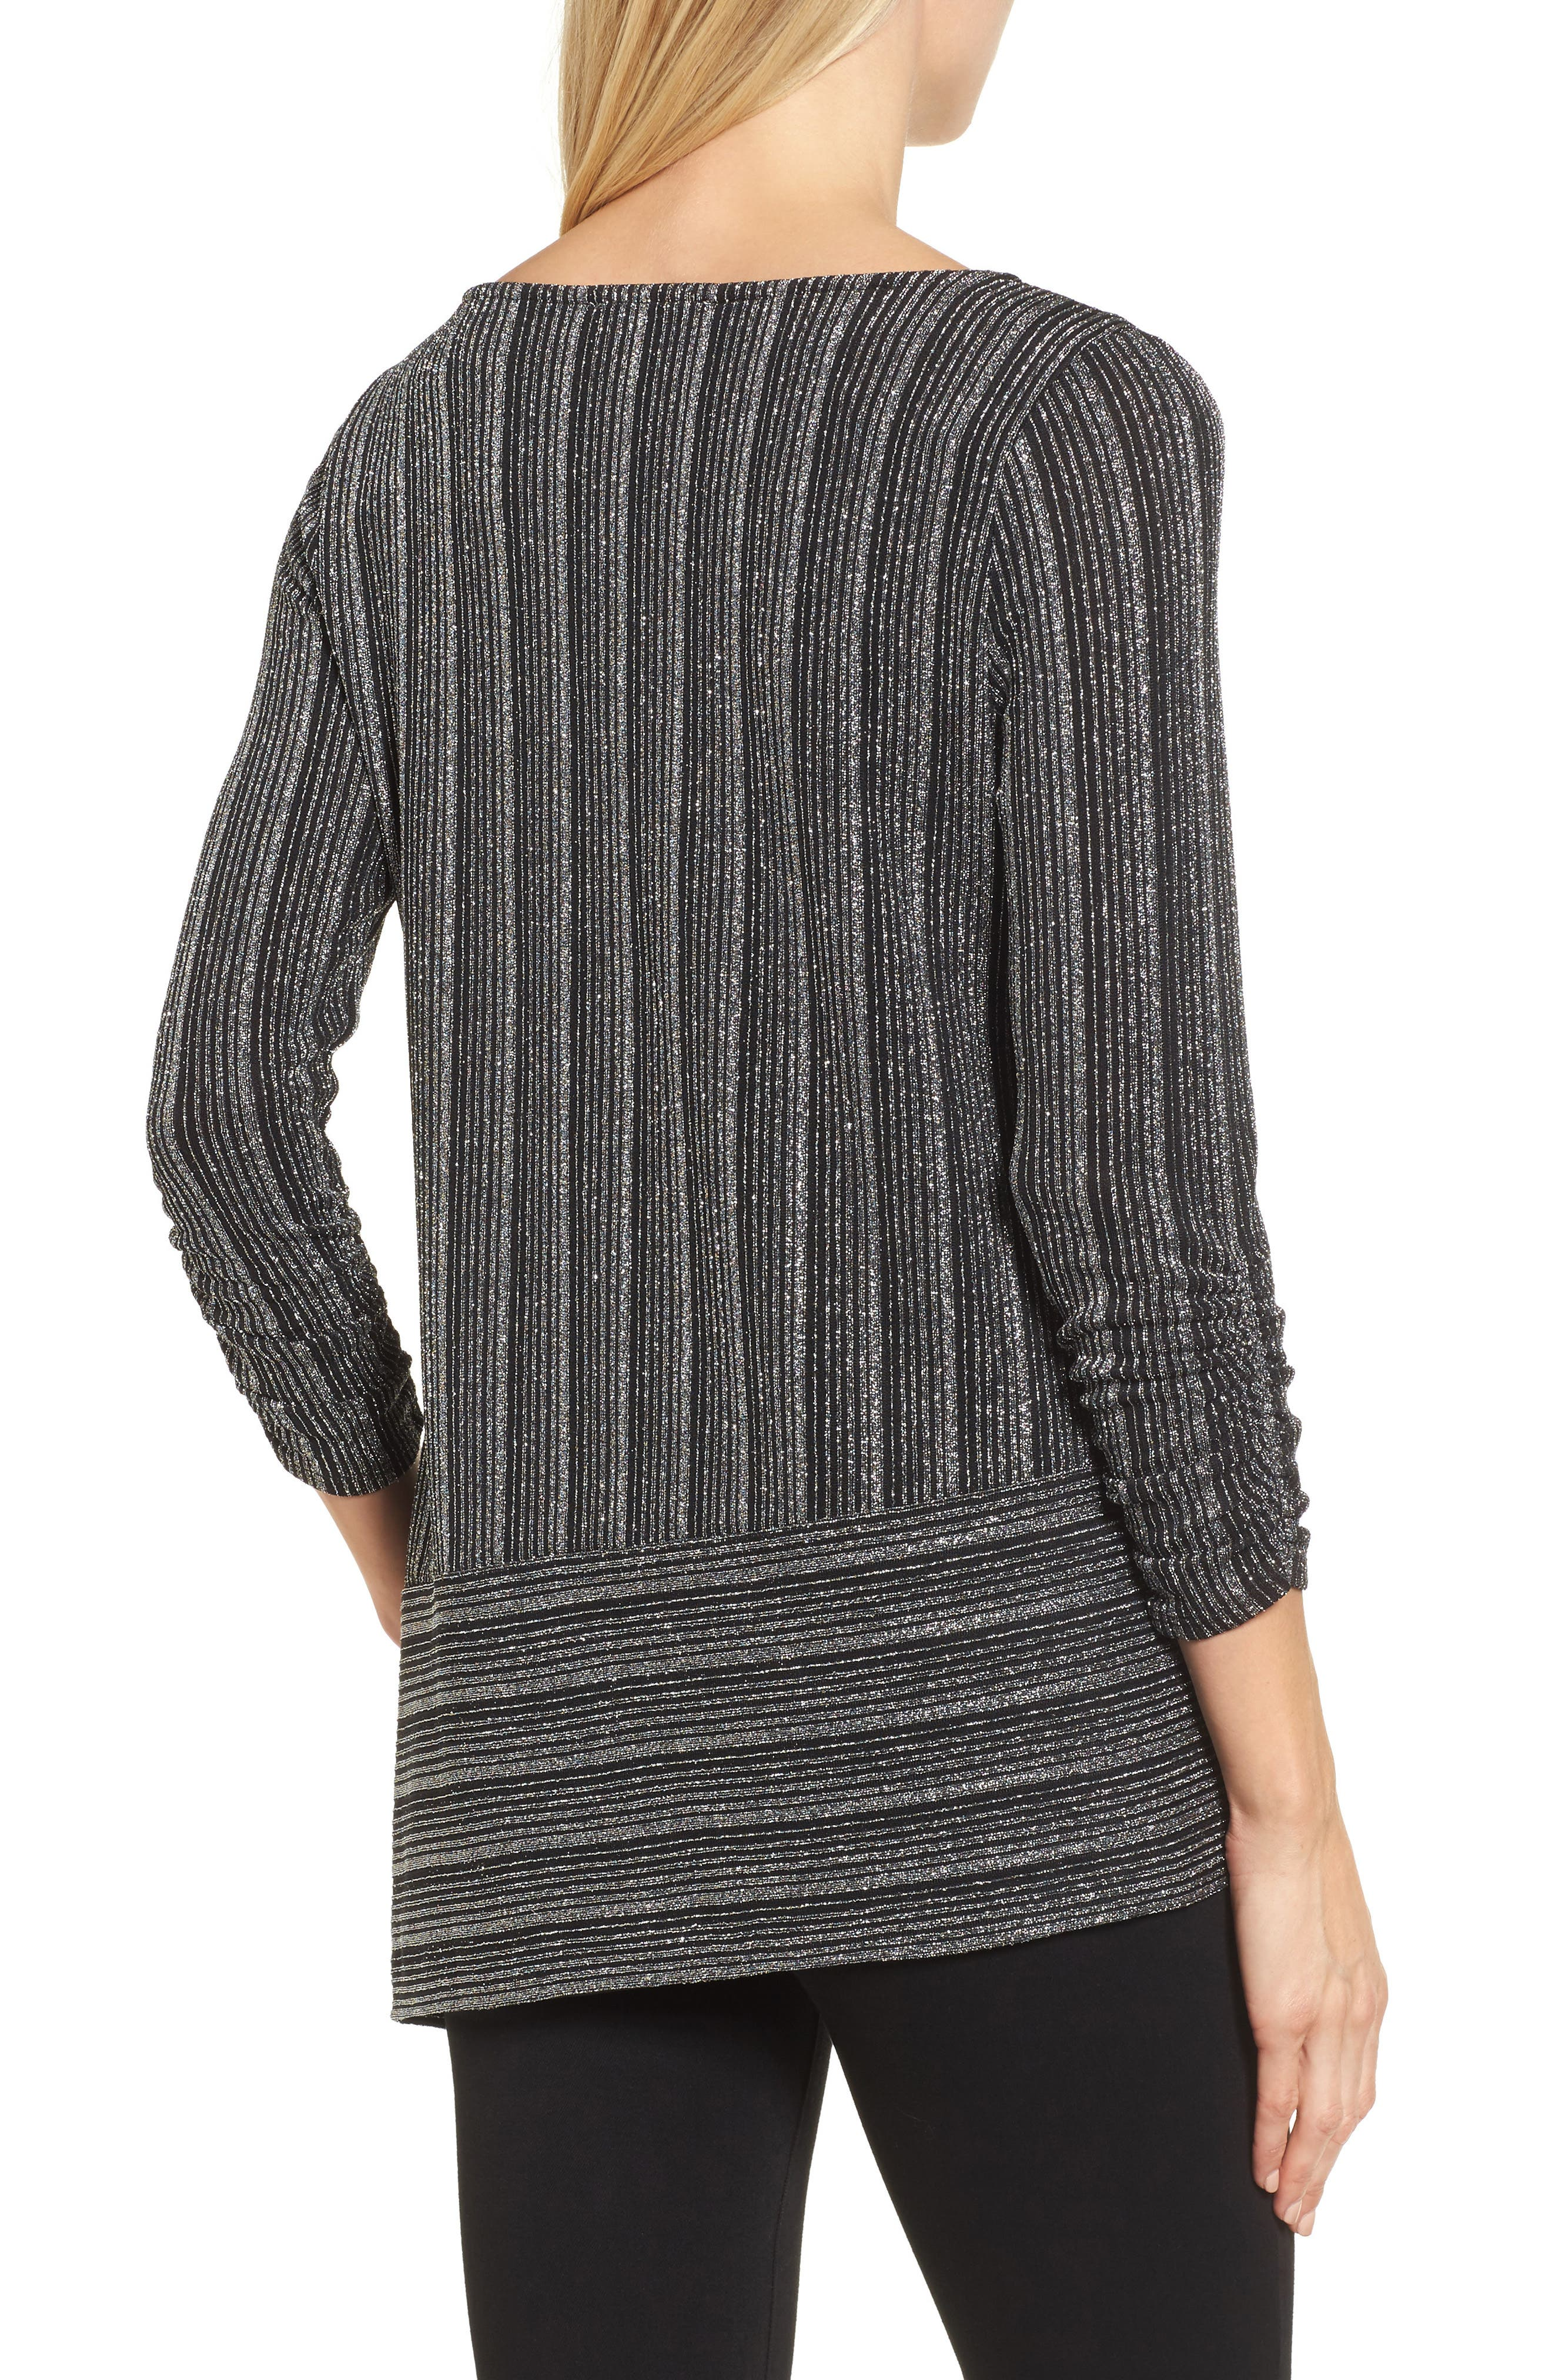 Metallic Stripe Asymmetrical Top,                             Alternate thumbnail 2, color,                             040